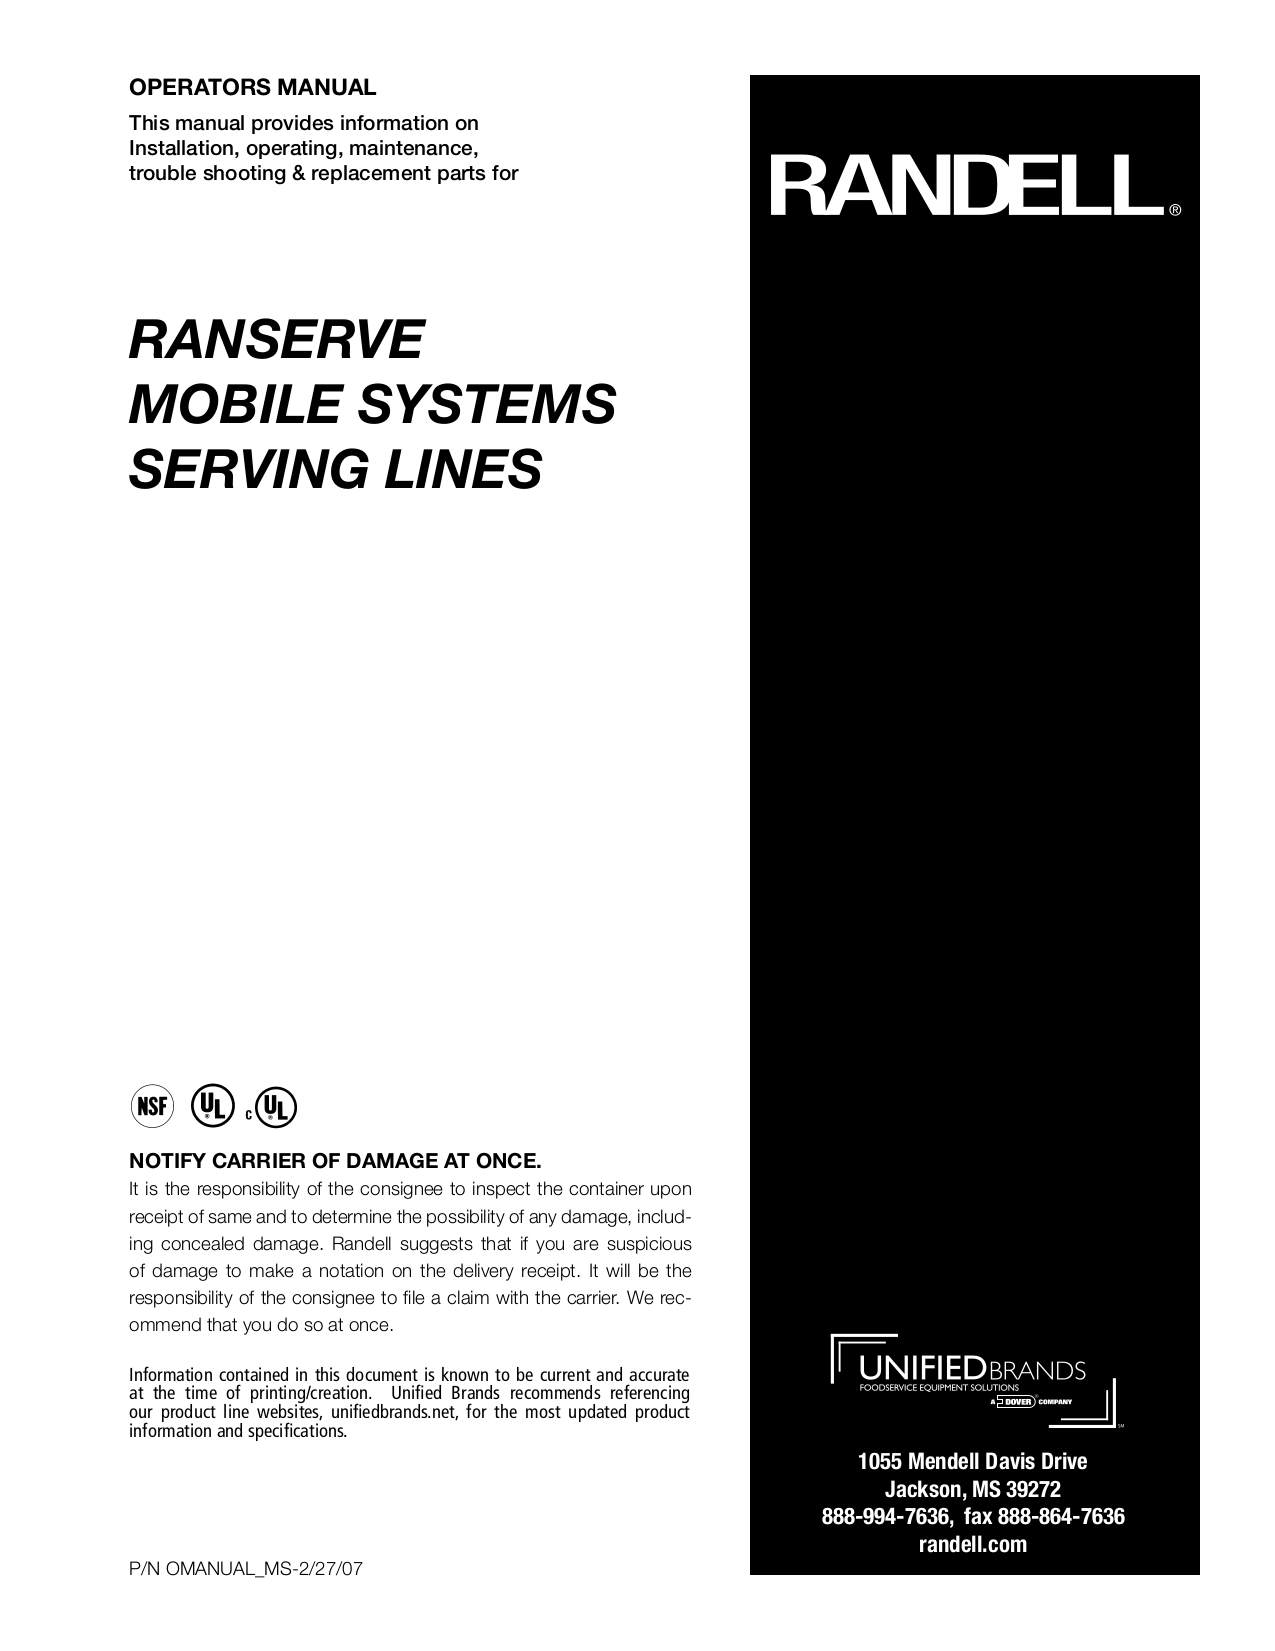 pdf for Randell Other 14G SCA-2S Food Holding Units manual